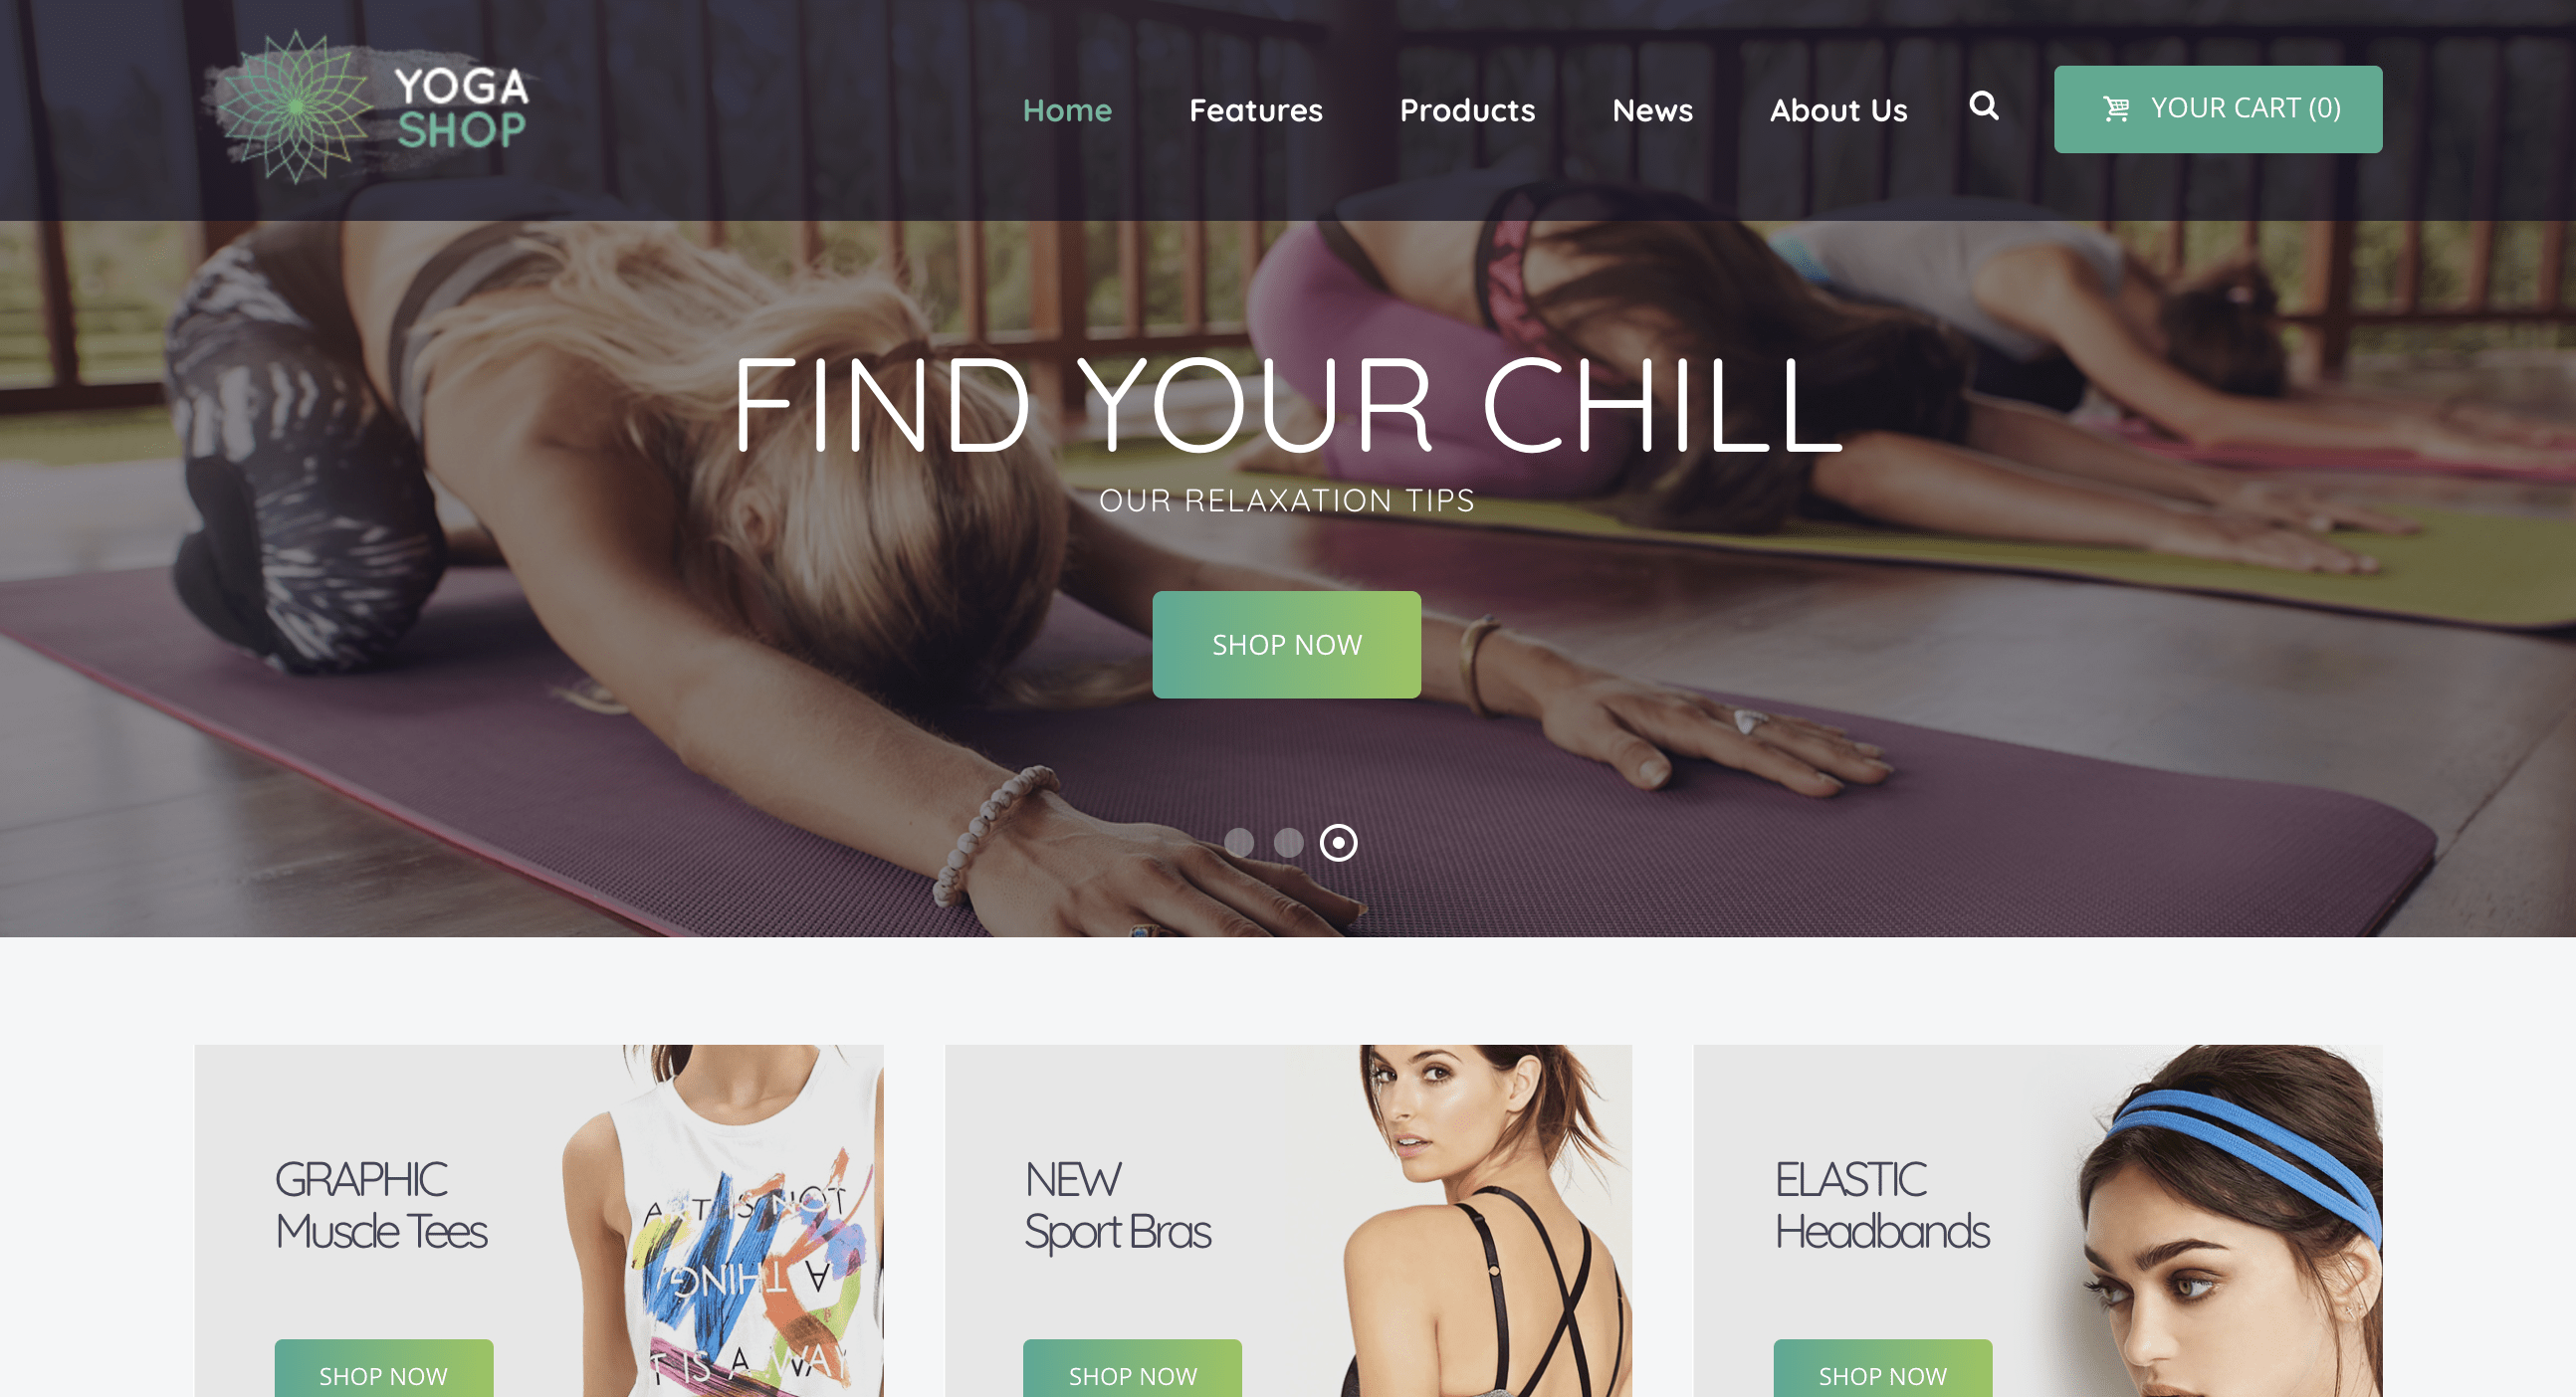 Yoga Shop - A Modern Sport Clothing & Equipment Shop WordPress Theme.png